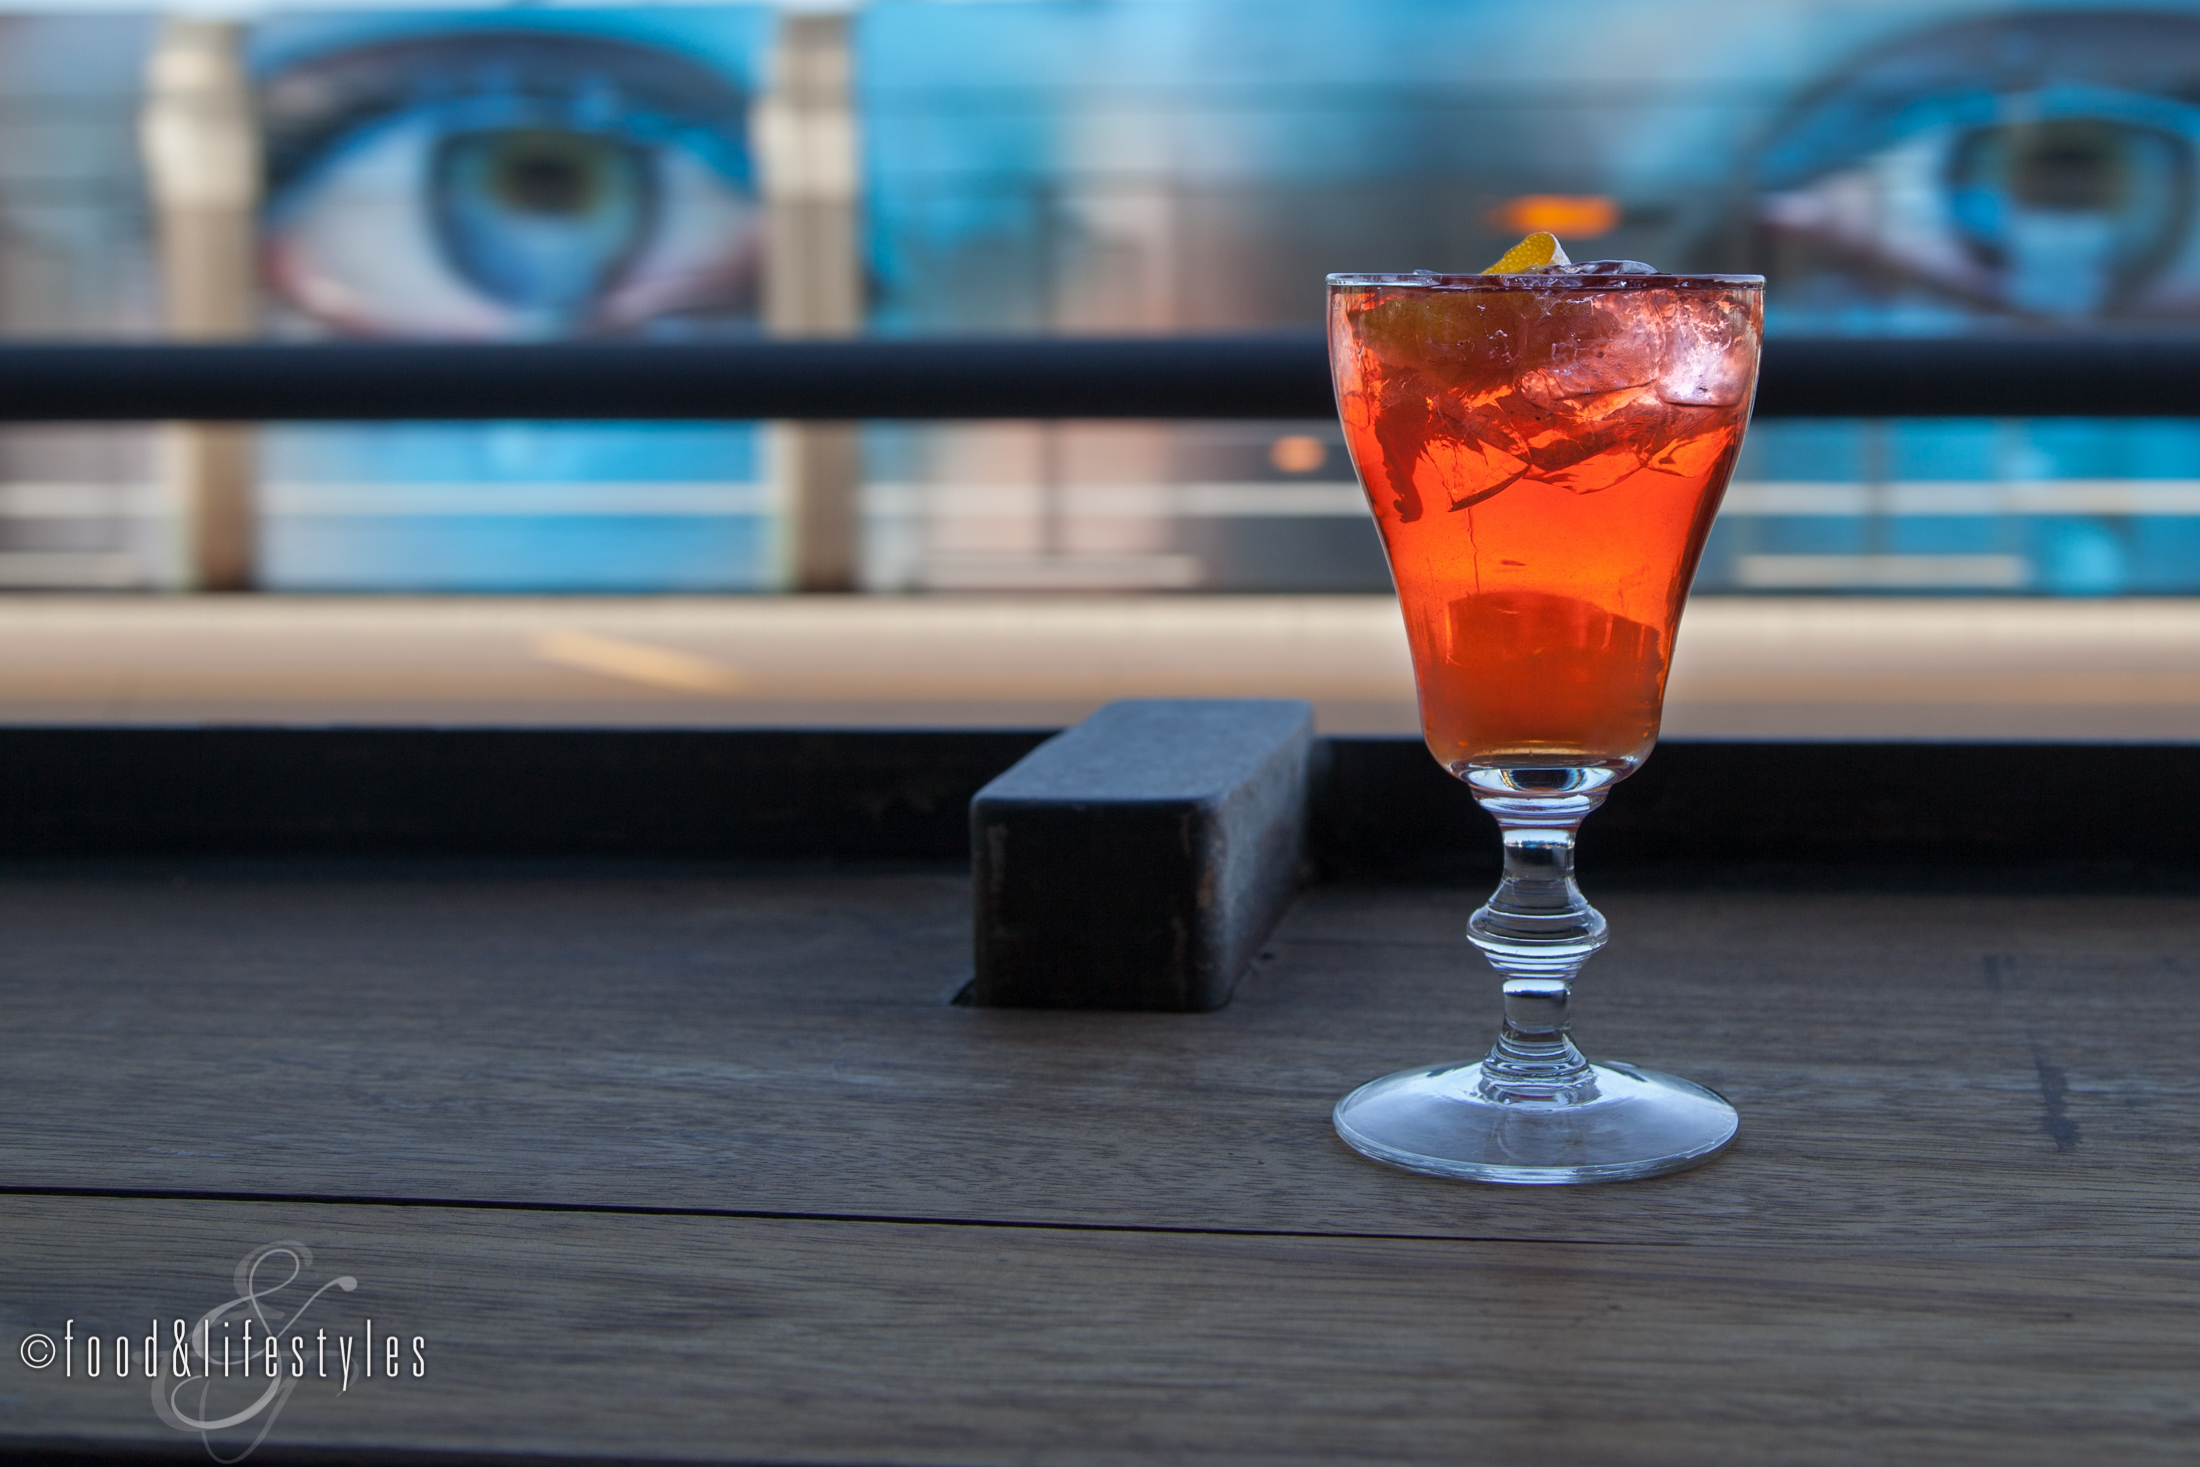 The Negroni at Southern Rail (all photos by Jenelle Bonifield of Food & Lifestyles)